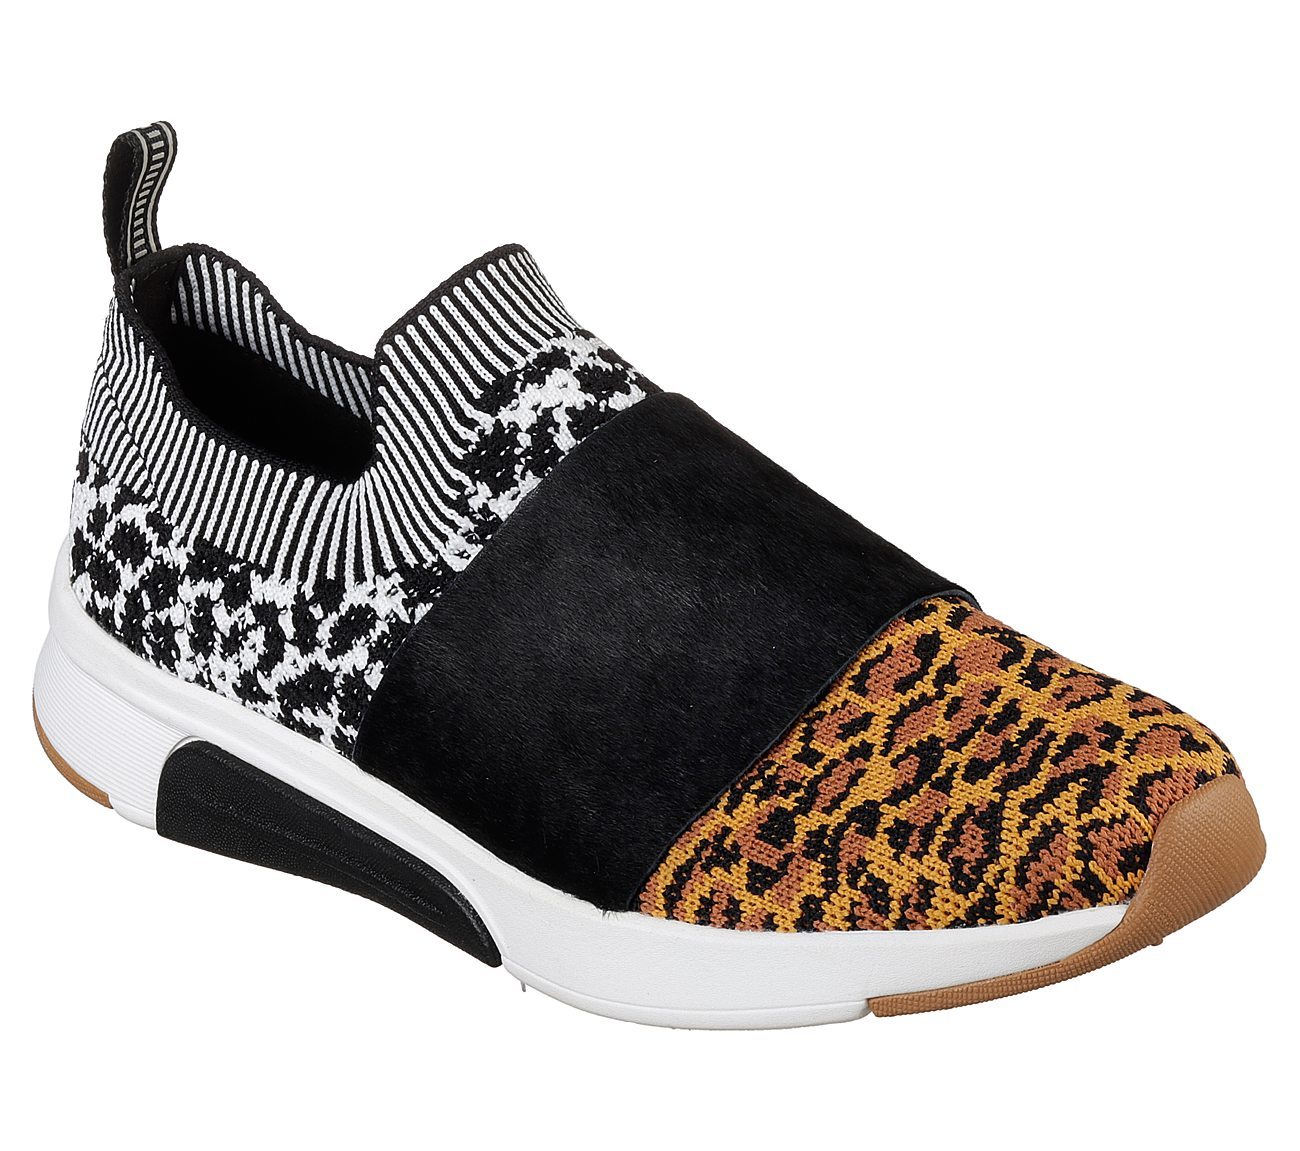 5b6fb07f7558 Buy SKECHERS Modern Jogger - Abbe Slip-On Sneakers Shoes only £80.00